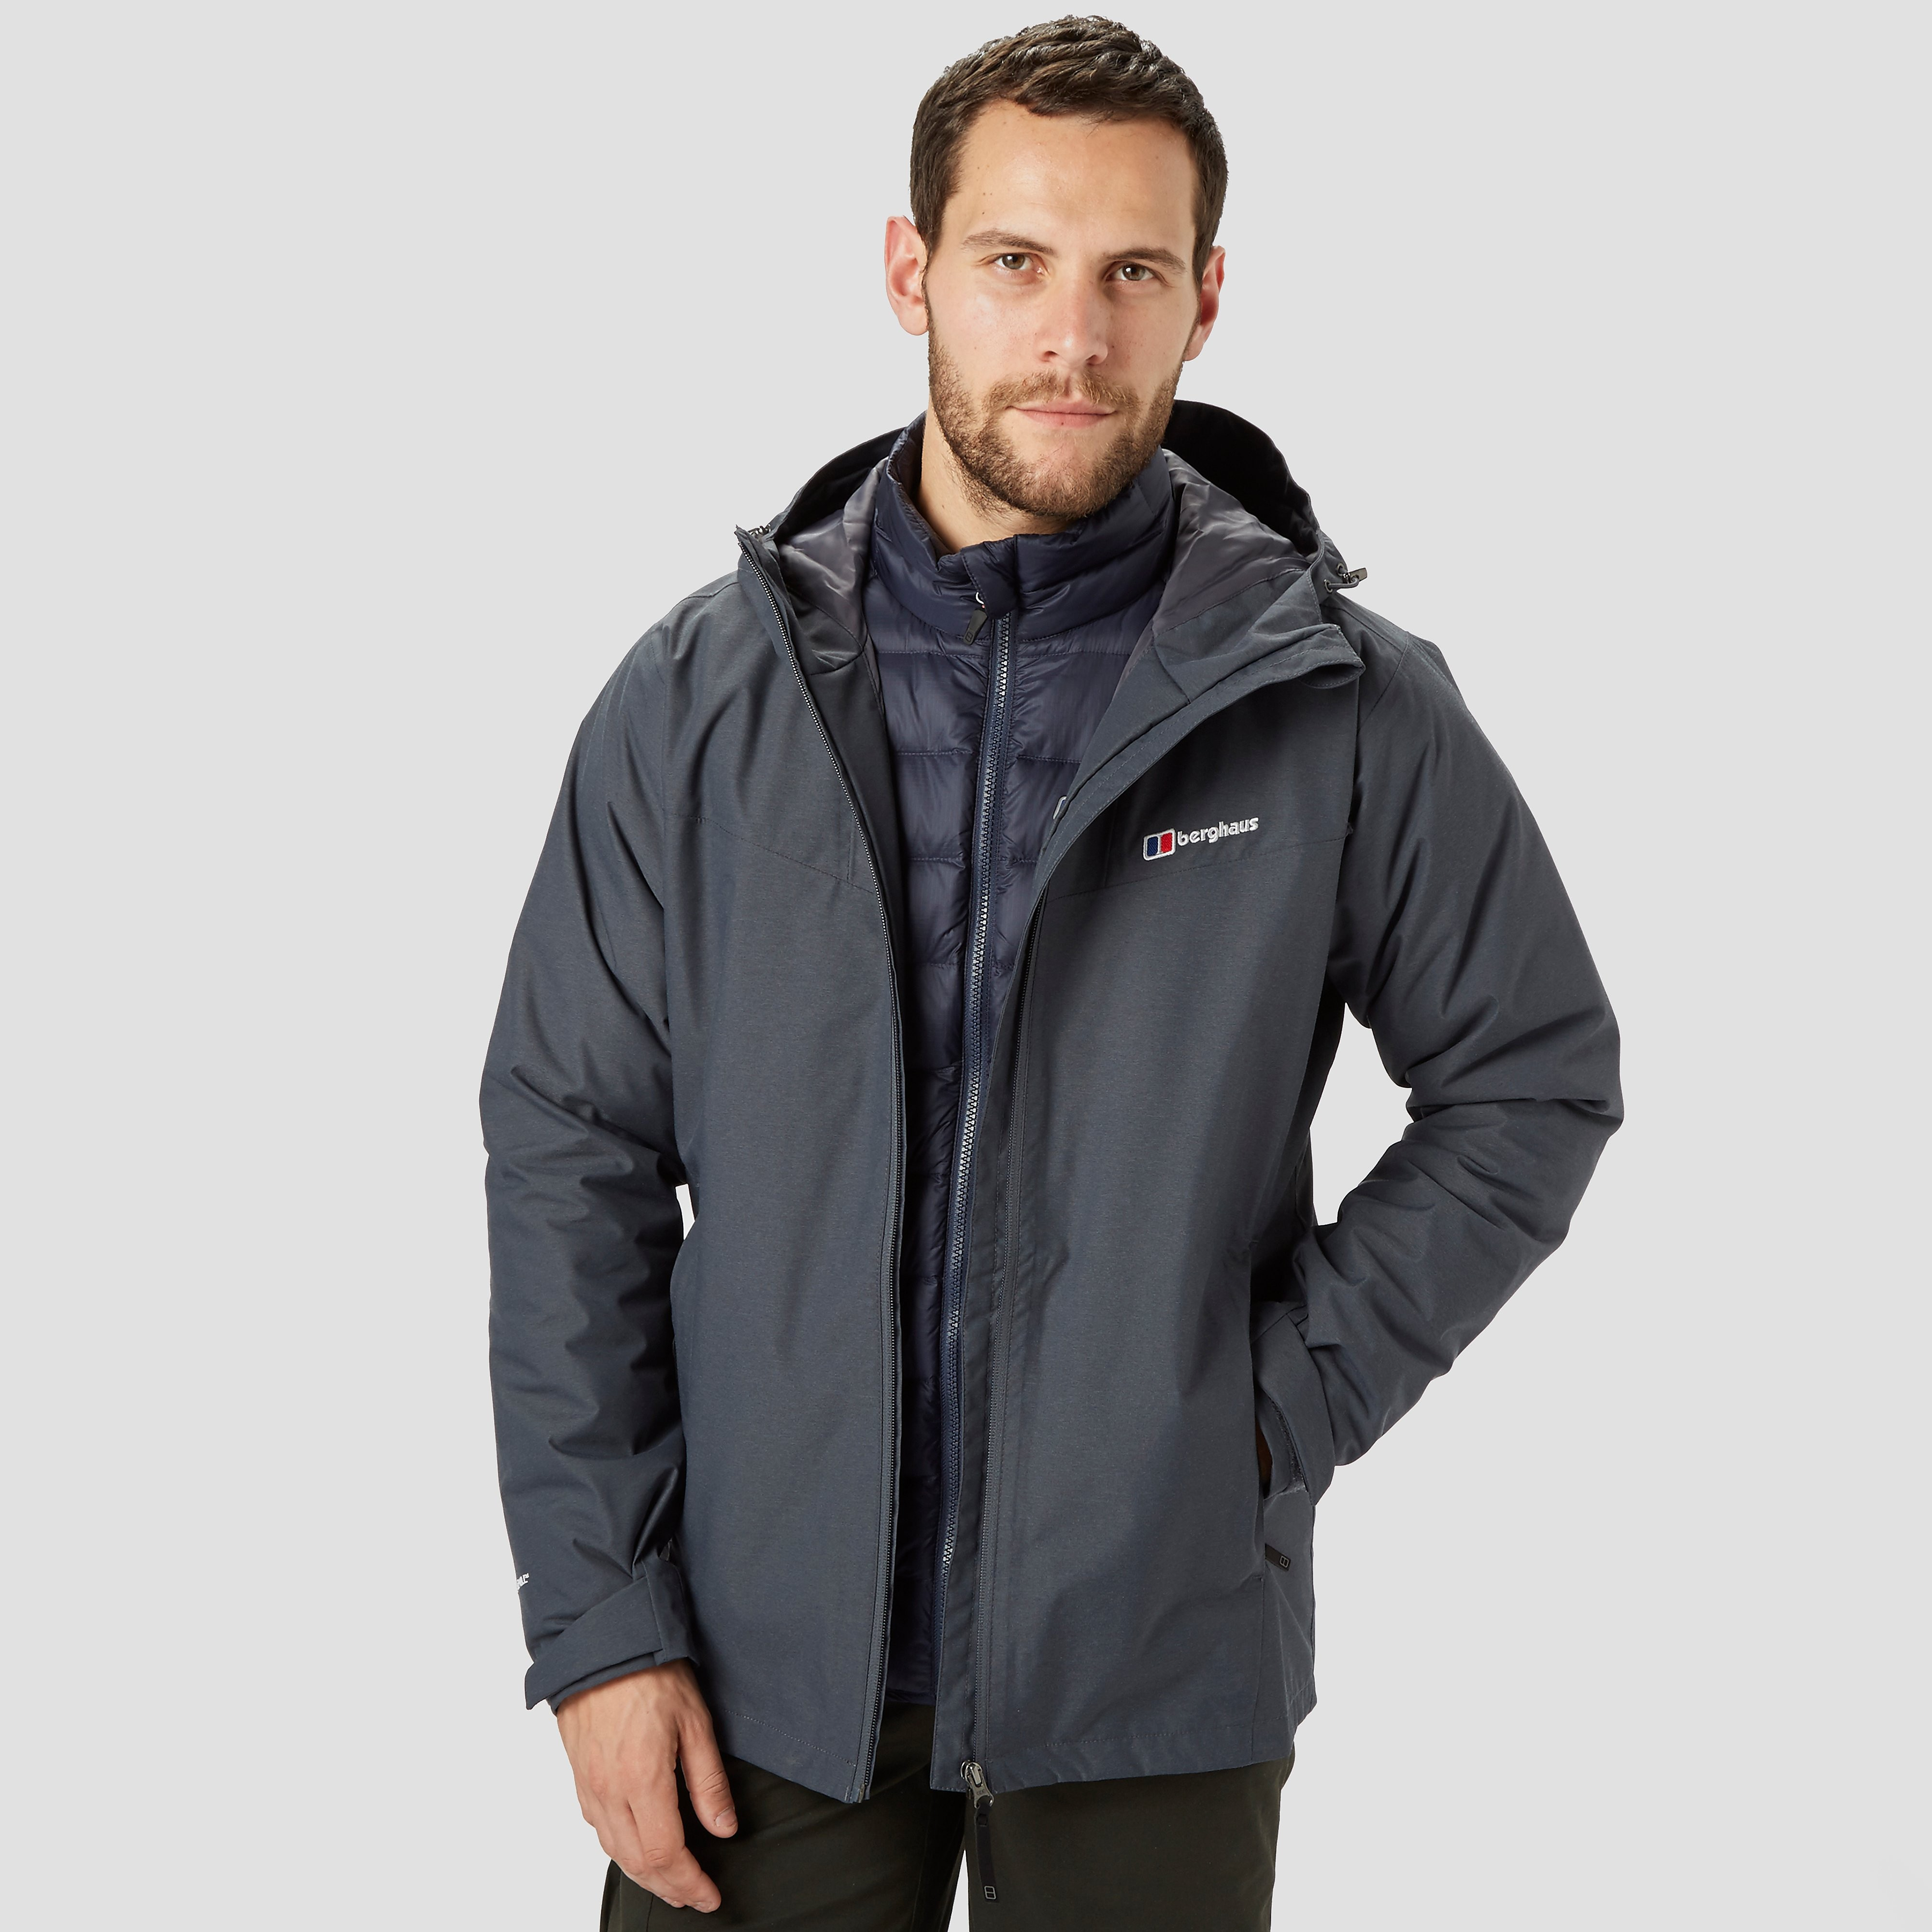 Berghaus Men's Stronsay Waterproof Jacket